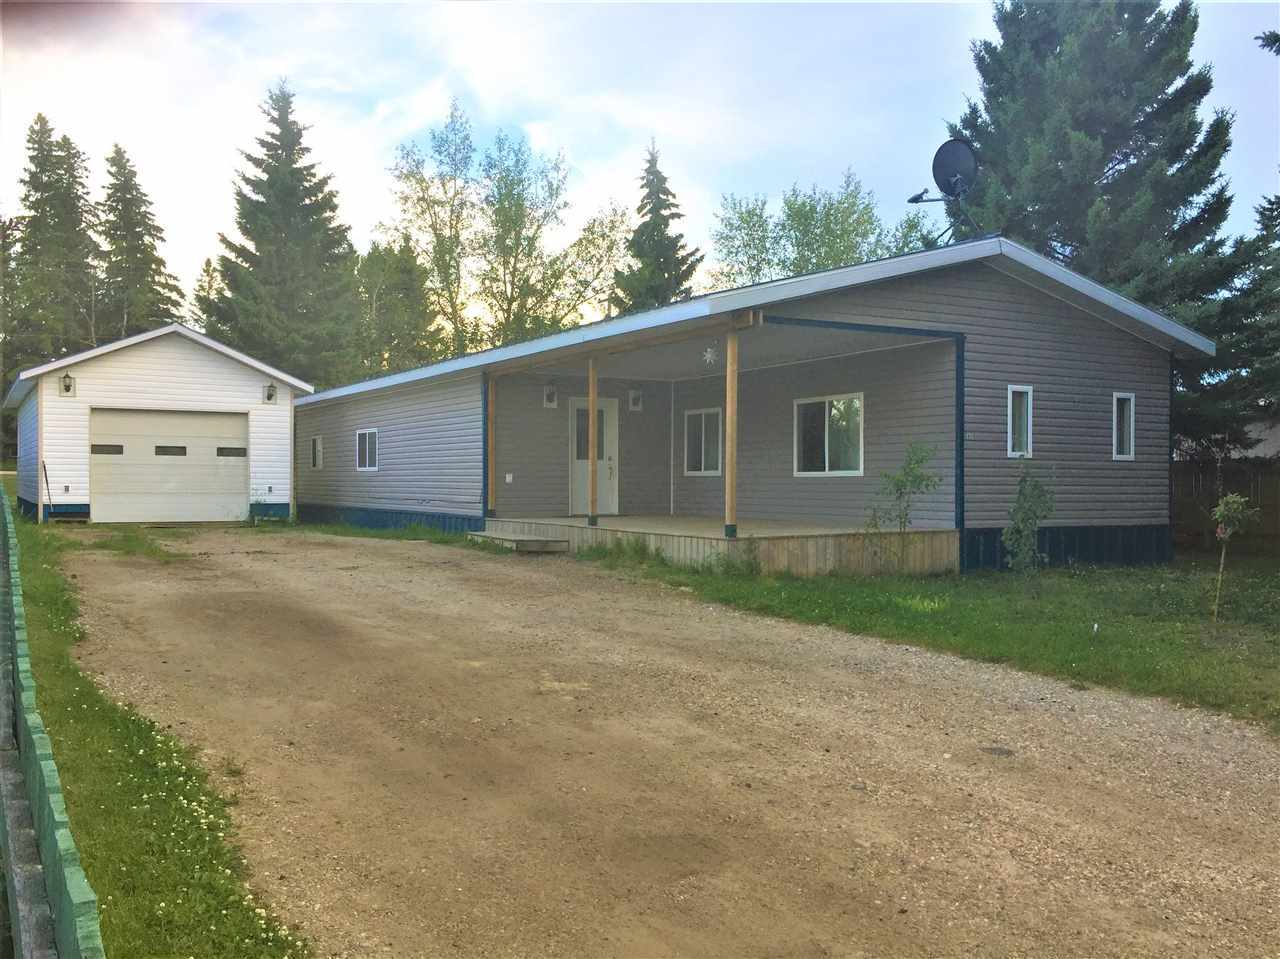 Three bedroom mobile home with large addition and many upgrades including drywall thoughout, laminate flooring, vinyl clad exterior, metal roof and 11' x 25' covered deck.  Property also has a 16' x 36' insulated garage/shop with 220 v. power and additional space to make it ideally suited for the handy man or for extra storage space.  Great opportunity for the first time home buyer or for a revenue property.